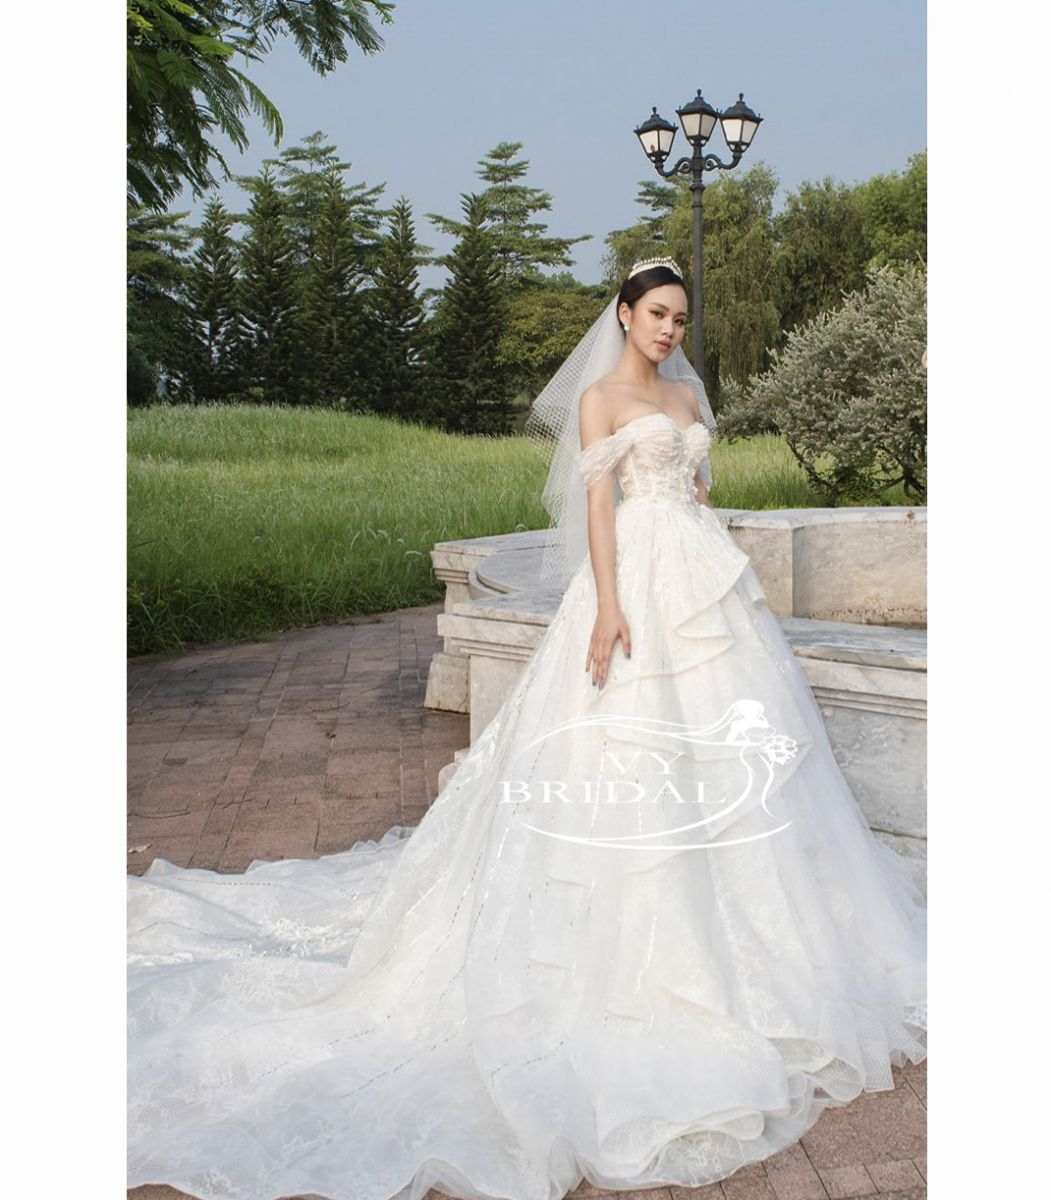 Luxury Wedding Dress - Váy Nhũ Xếp Tầng